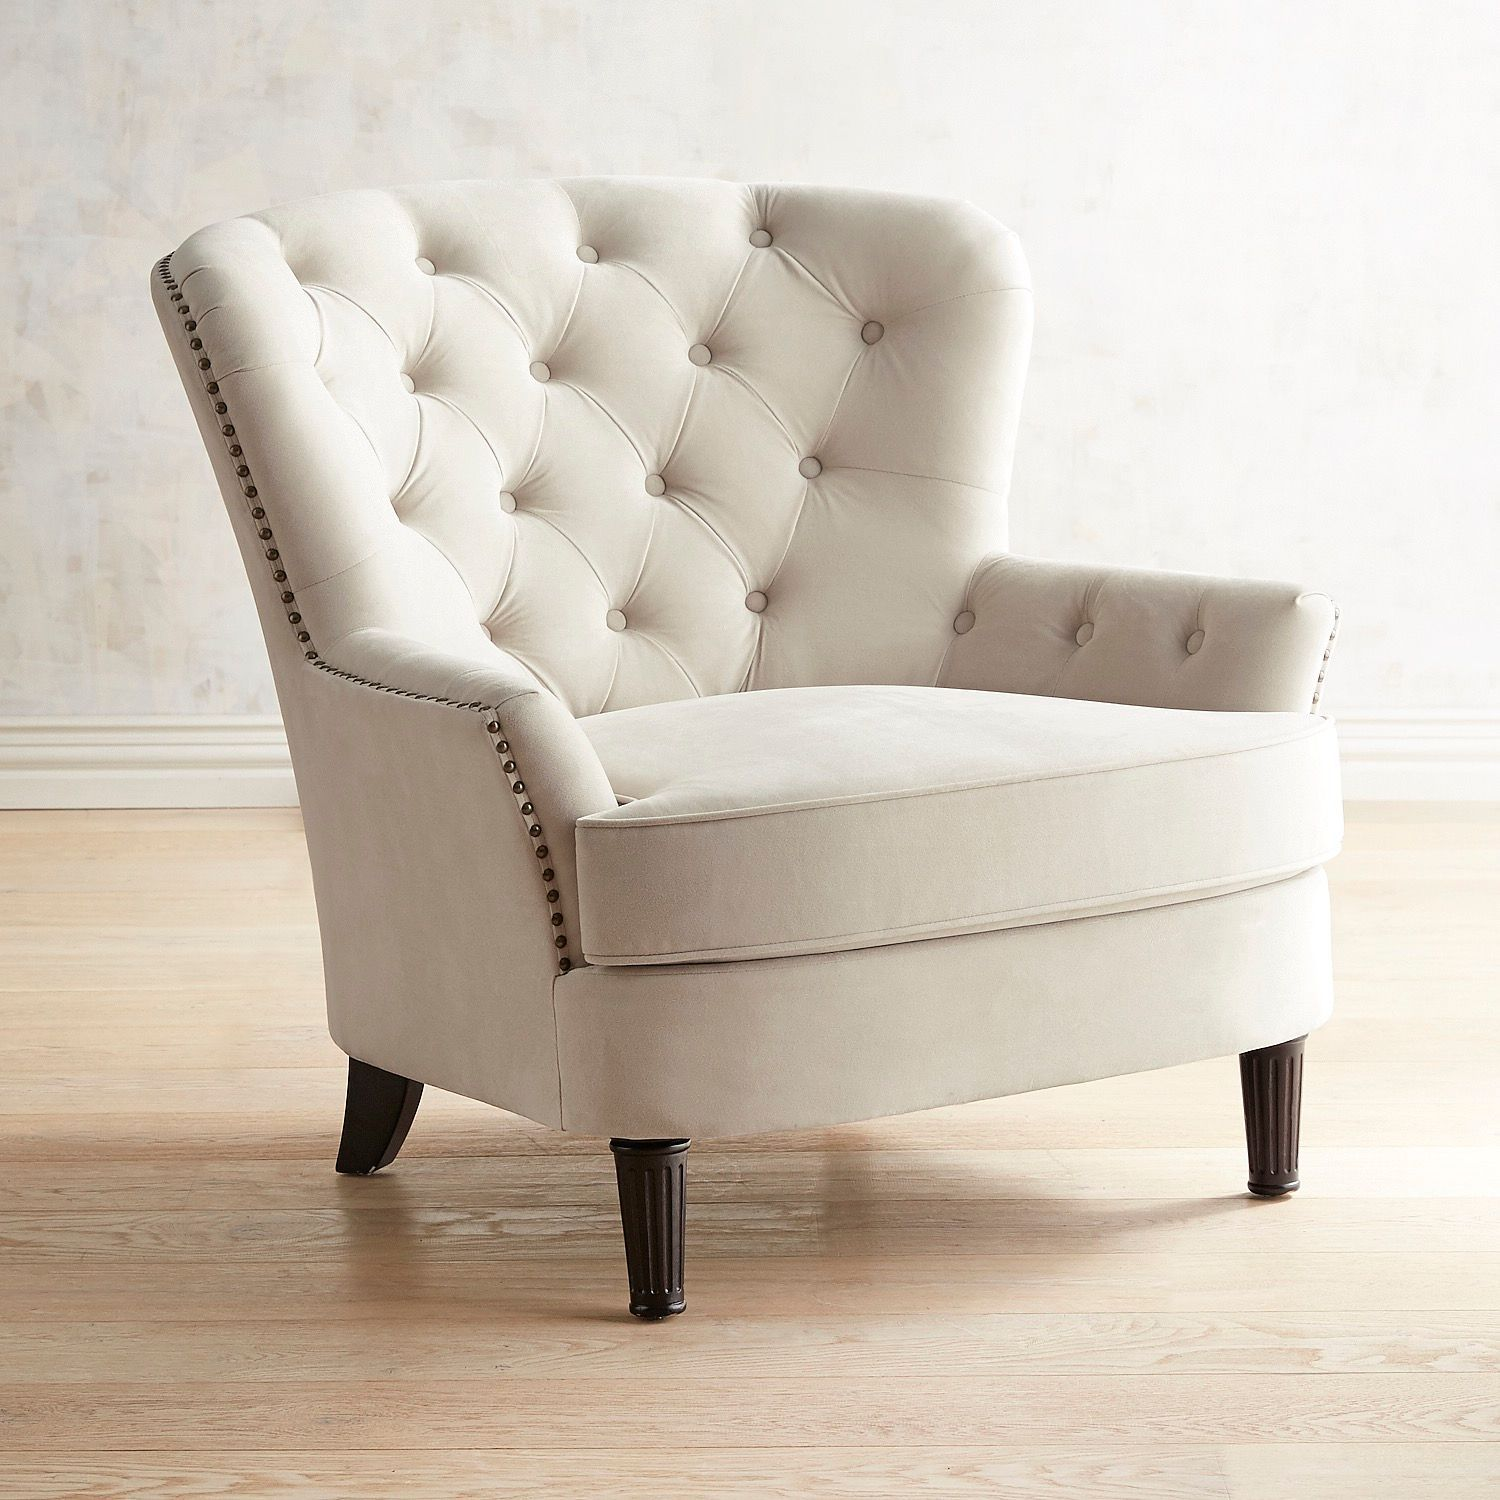 Eliza Cream Tufted Armchair Tufted Arm Chair Upholstered Chairs Small Upholstered Chair